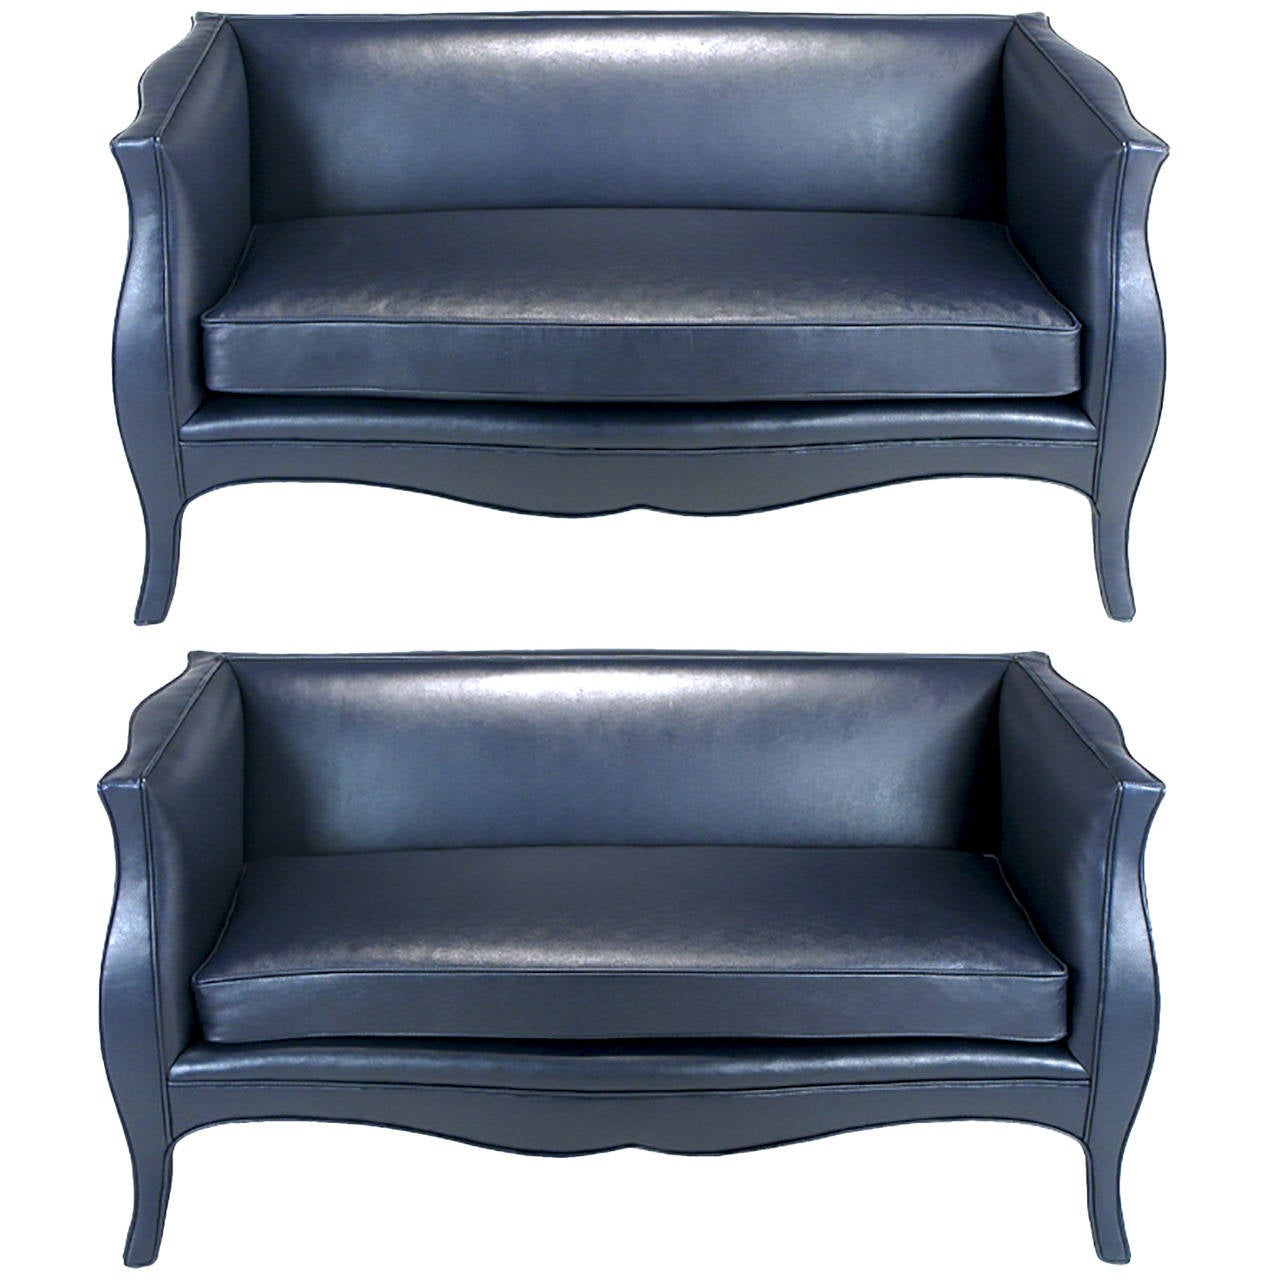 Pair of Richard Himmel Lutece Settees in Blue Edelman Reptile Patterned Calfskin For Sale